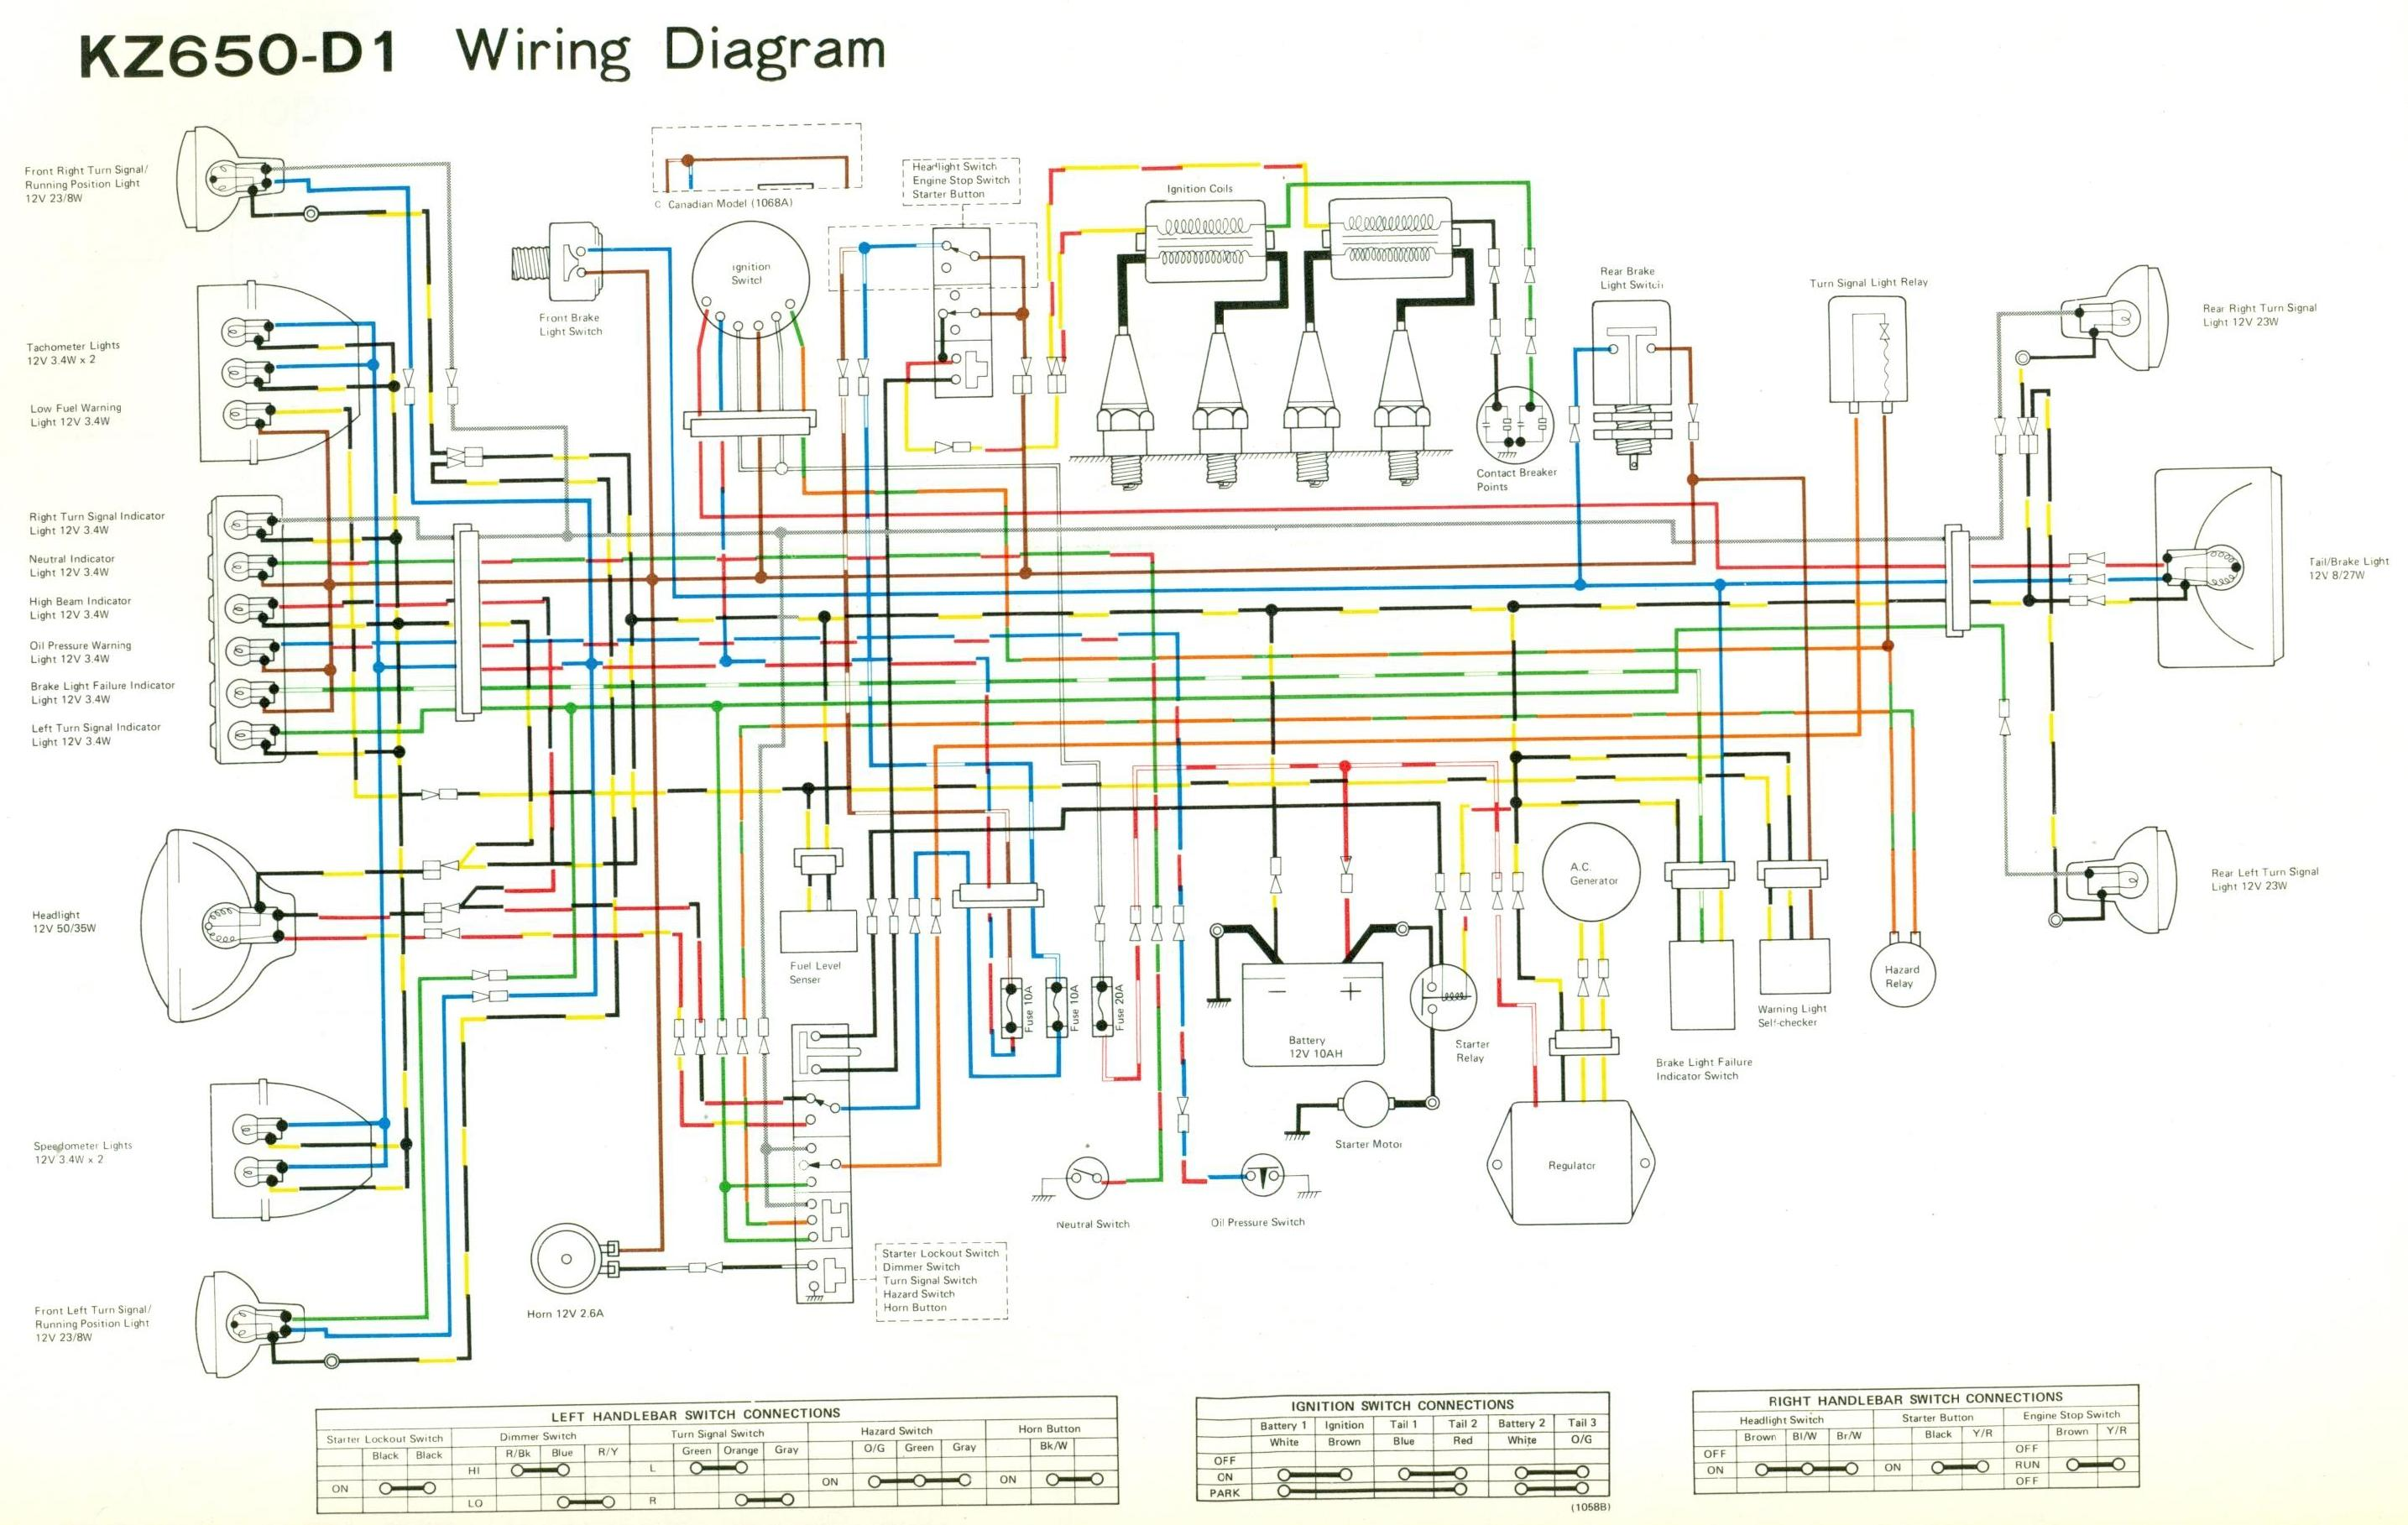 Kawasaki Ninja 650 Wiring Diagram Library Ducati 848 Electrical Schematic 900 And Schematics 2008